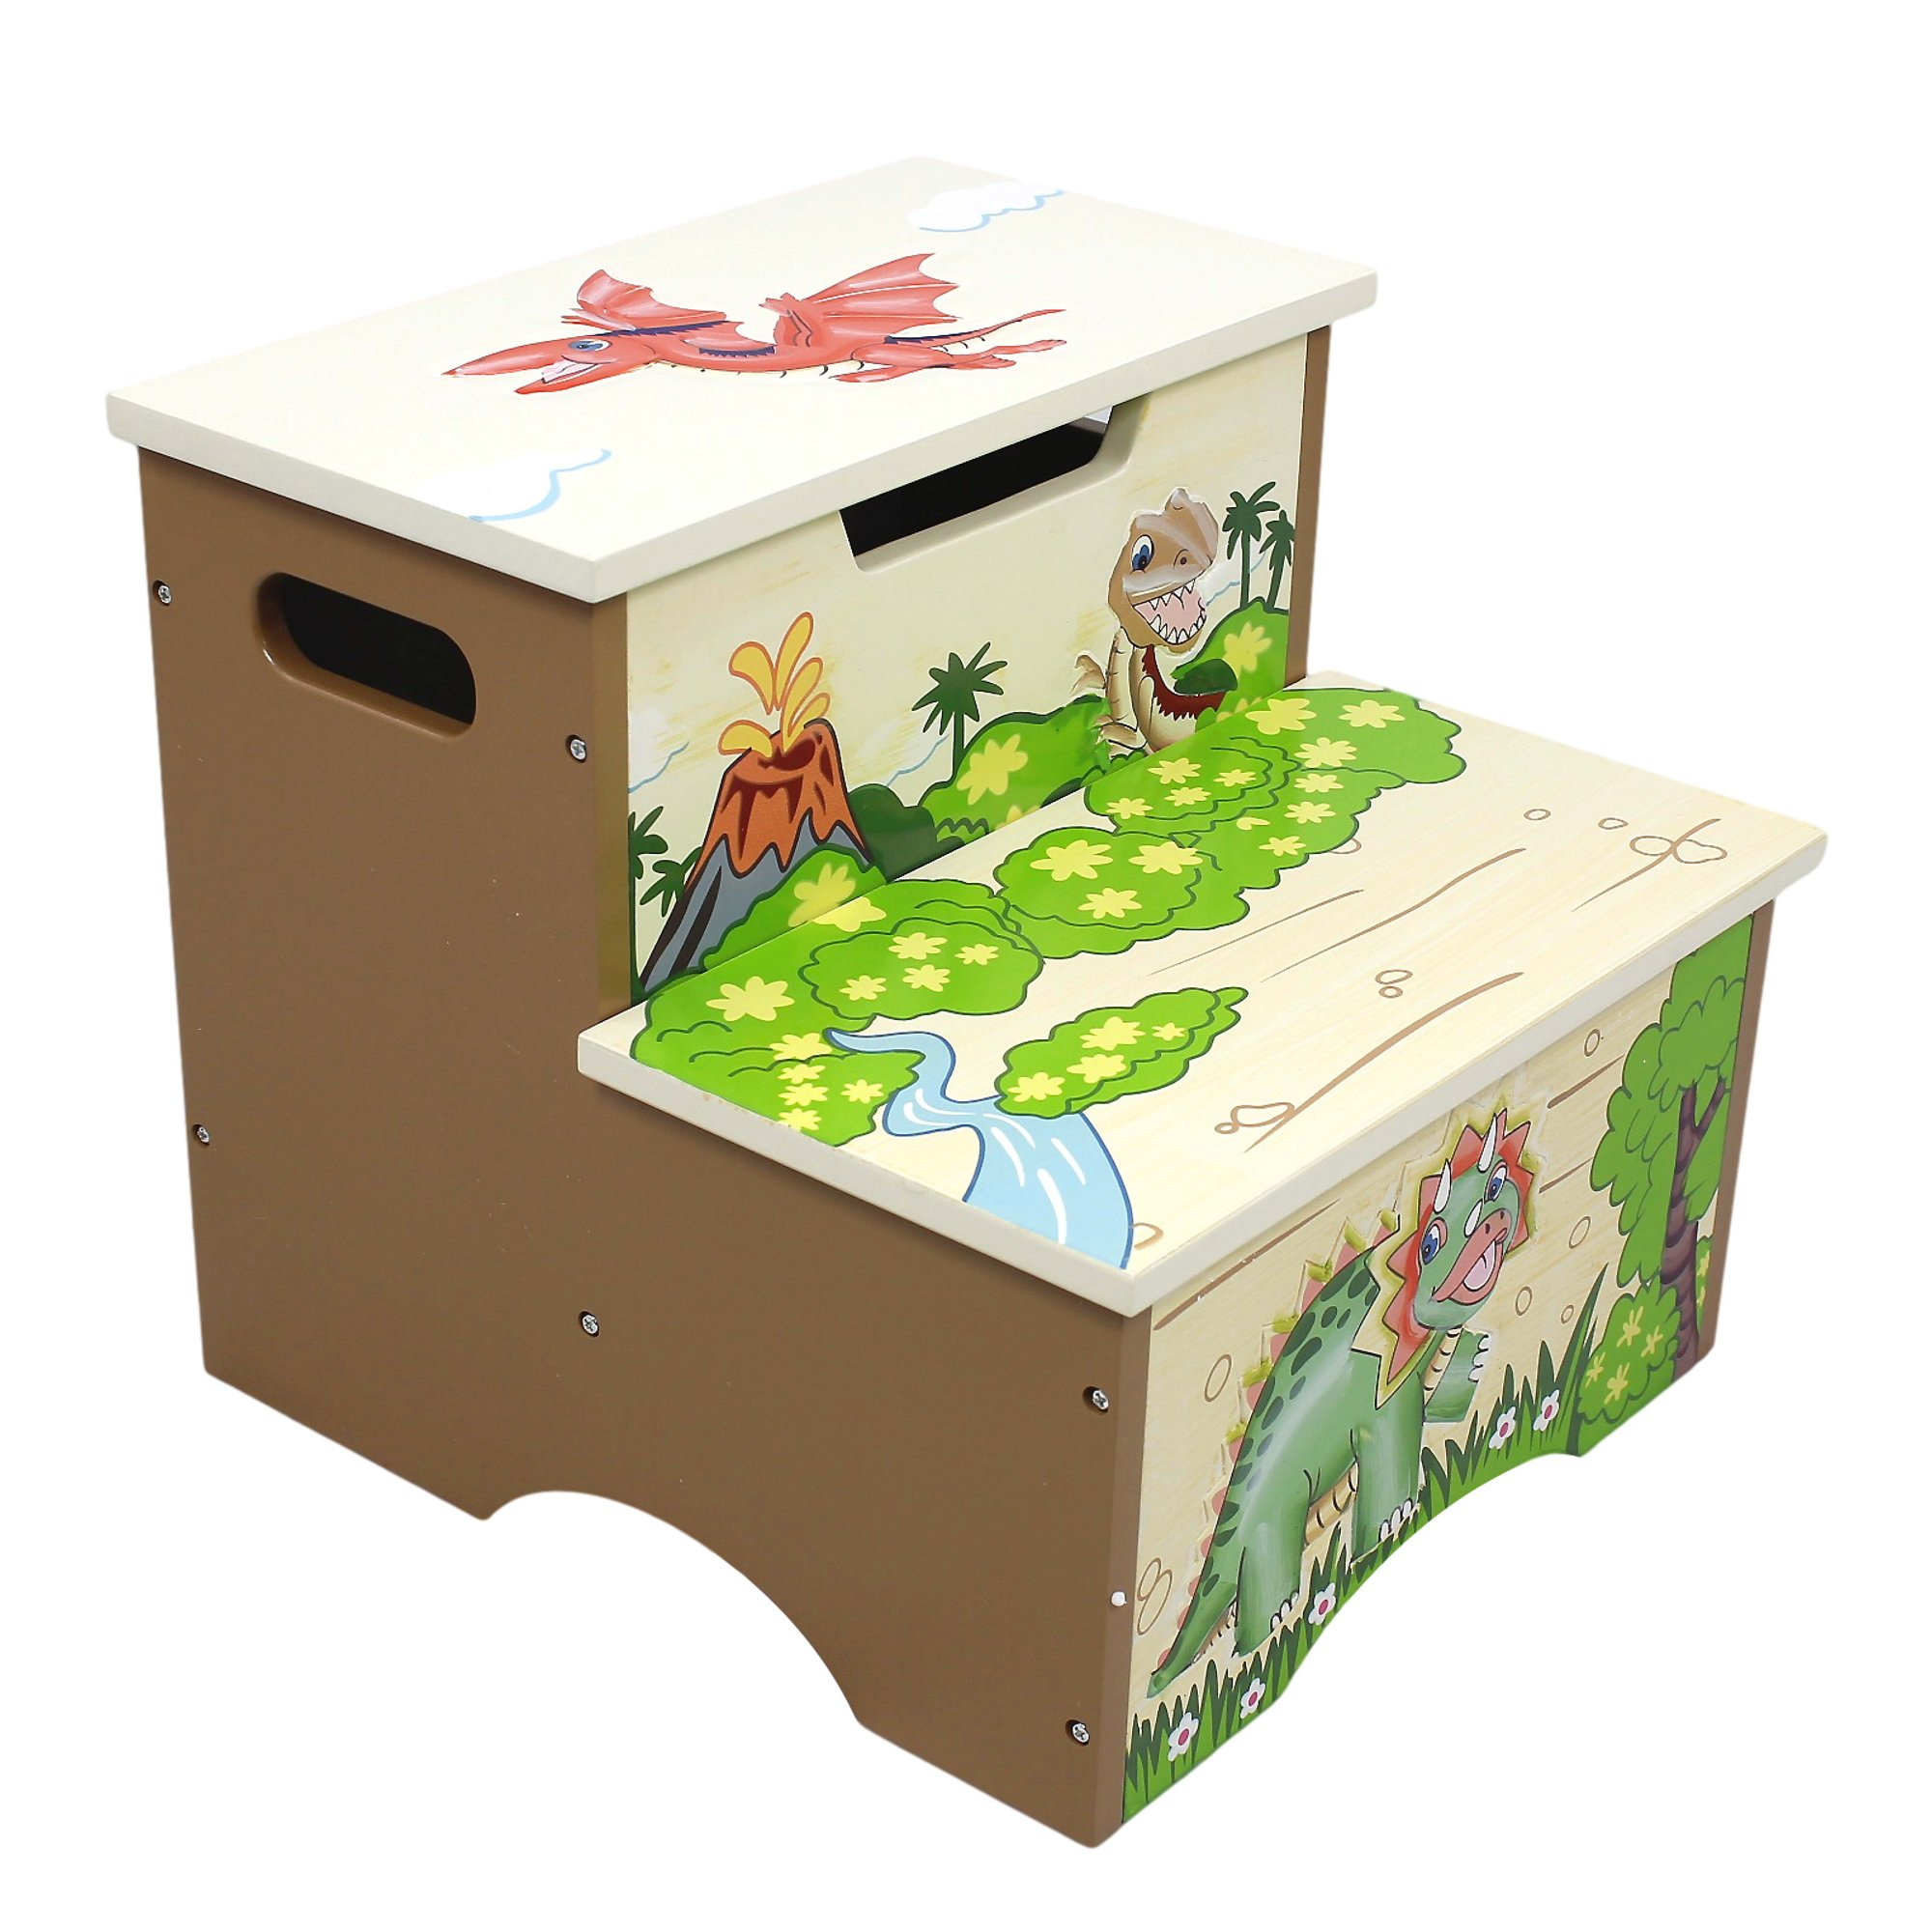 Fantasy Fields - Dinosaur Kingdom Thematic Kids Wooden Step Stool with Storage | Imagination Inspiring Hand Crafted & Hand Painted Details   Non-Toxic, Lead Free Water-based Paint